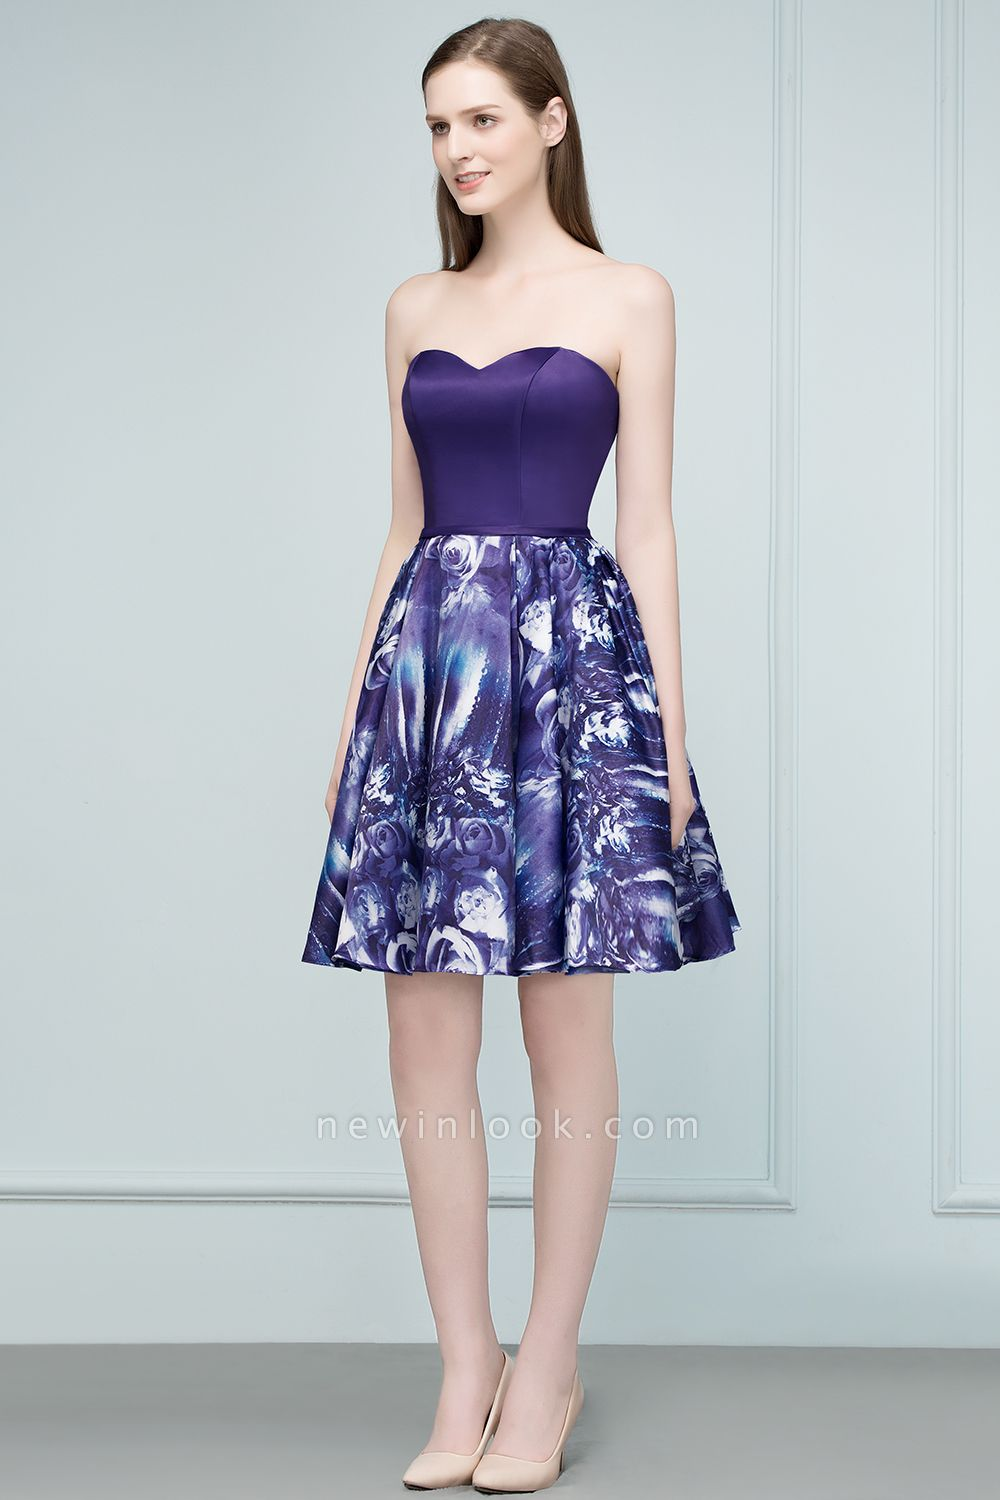 RICARDA | Quinceanera Strapless Sweetheart Short Print Dama Dresses